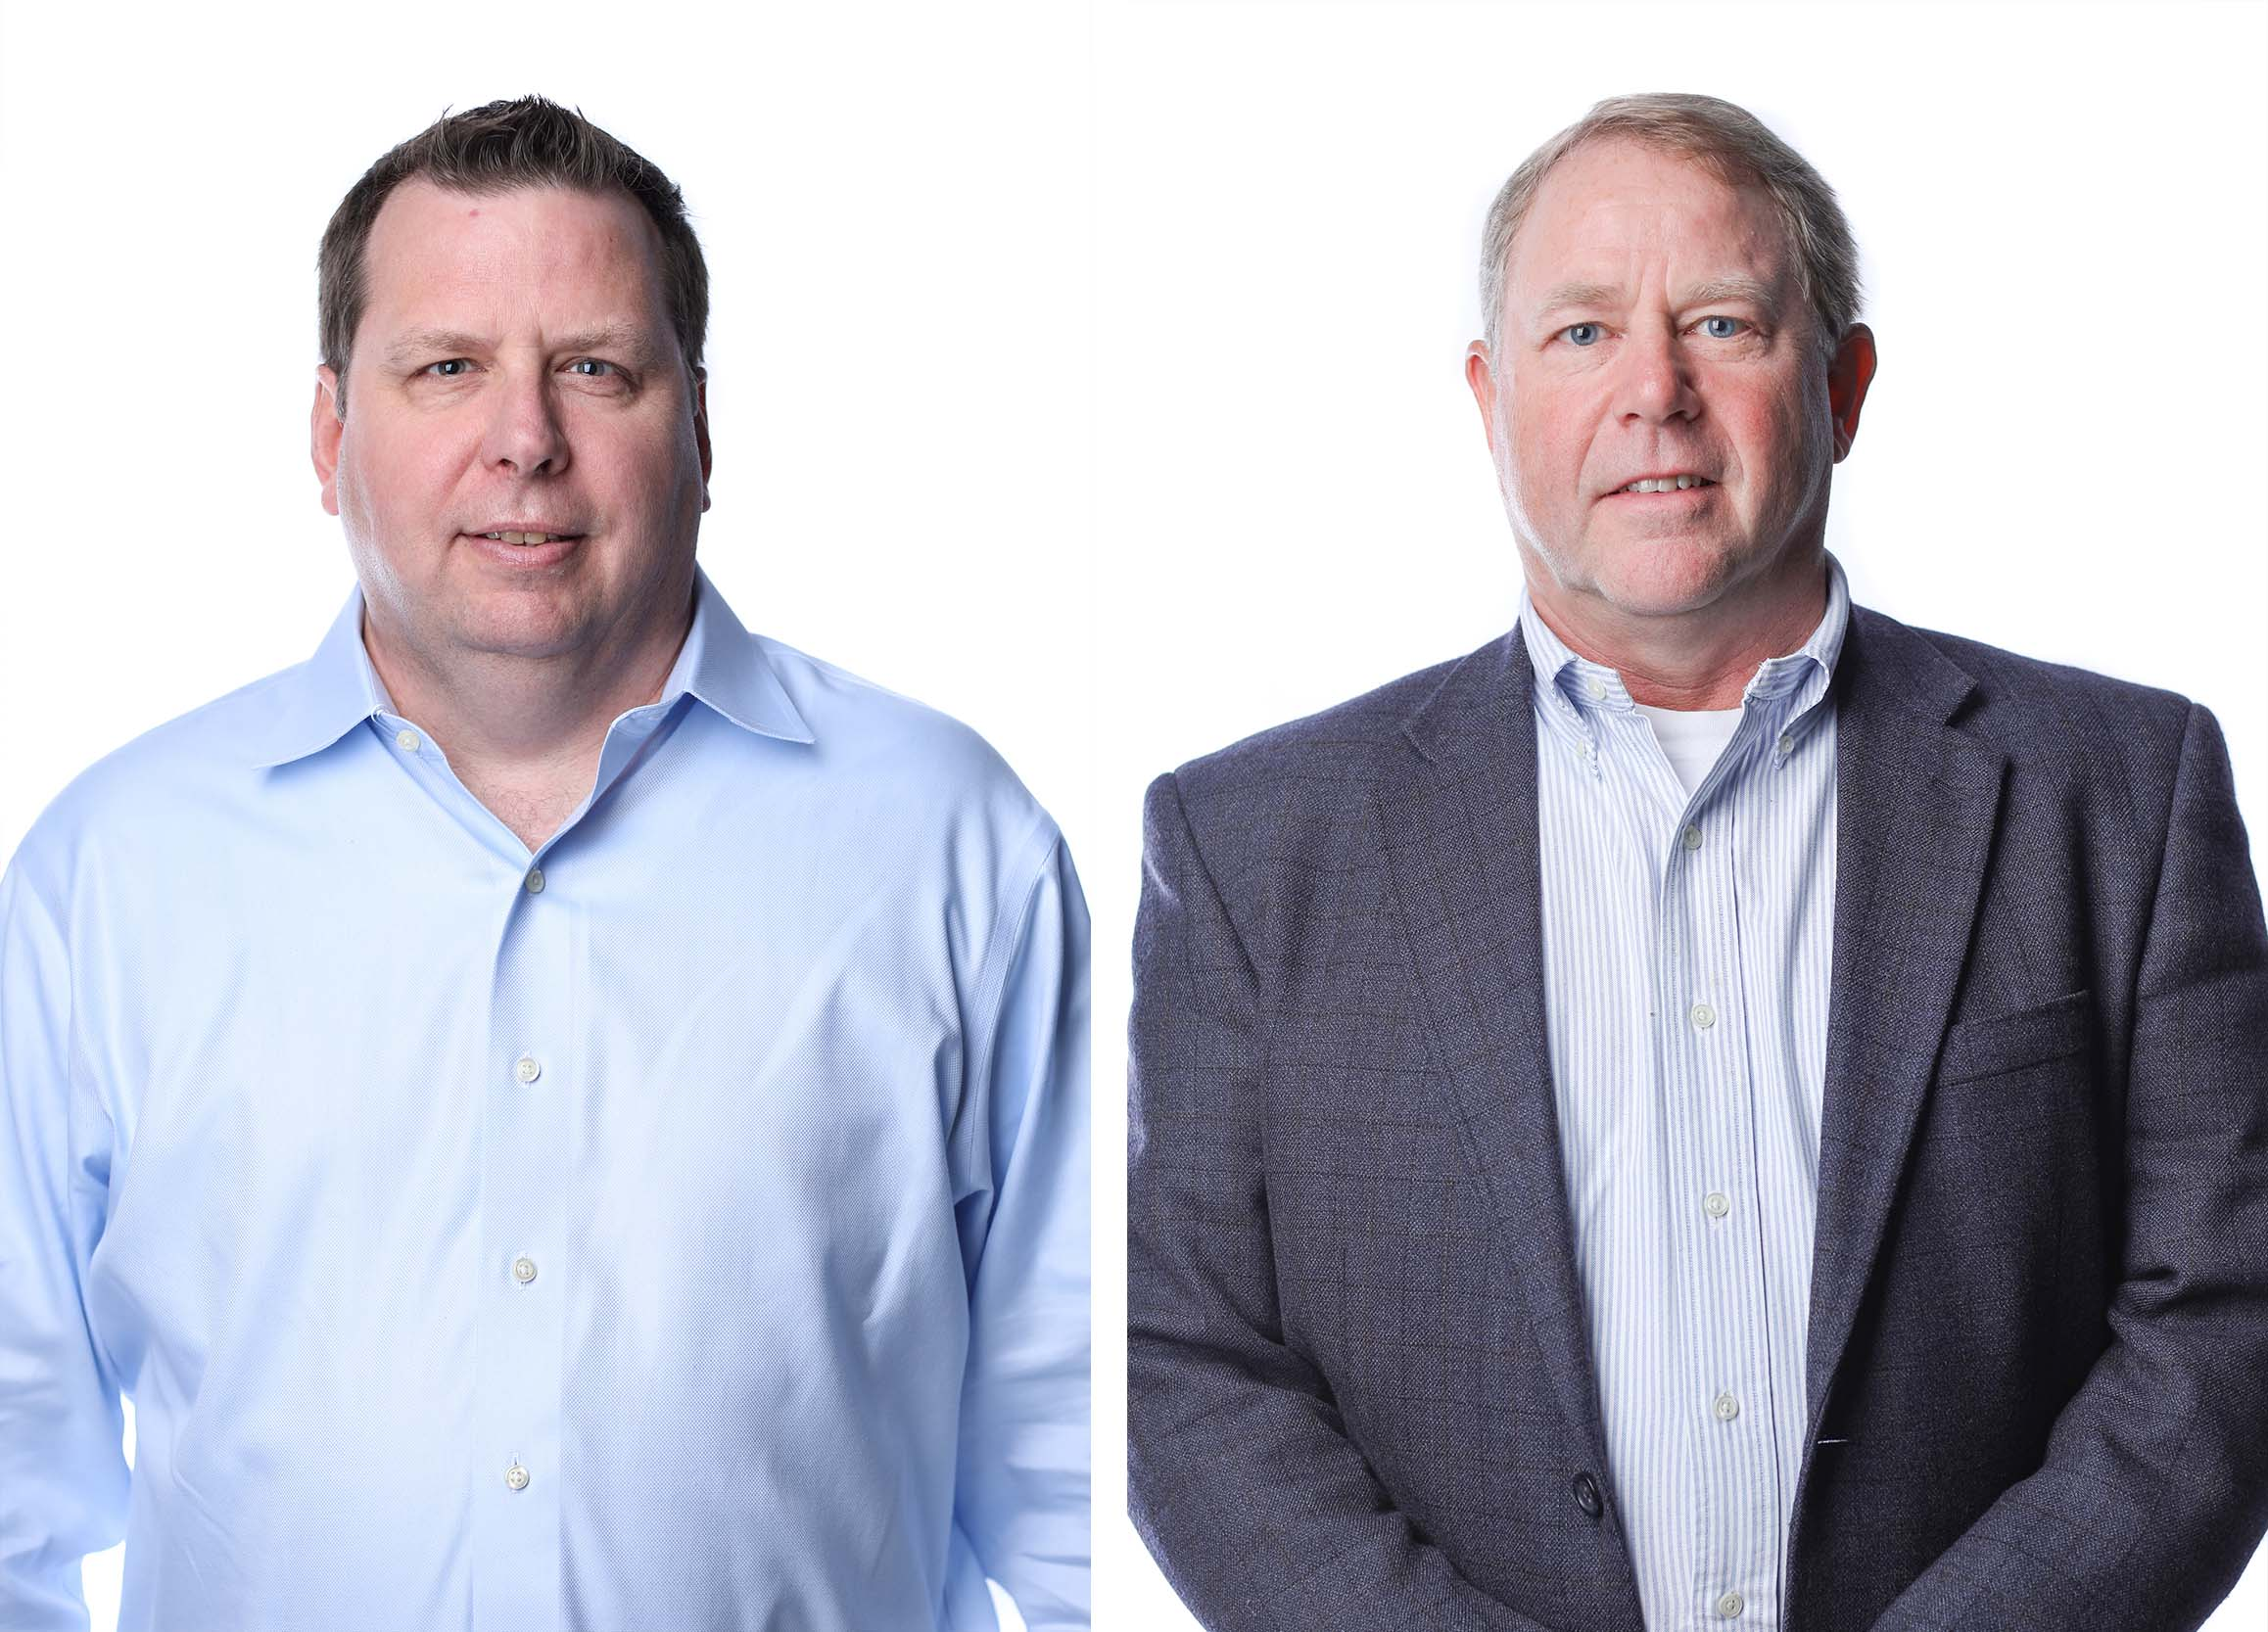 Skender Boosts Modular Initiative with Two New Hires